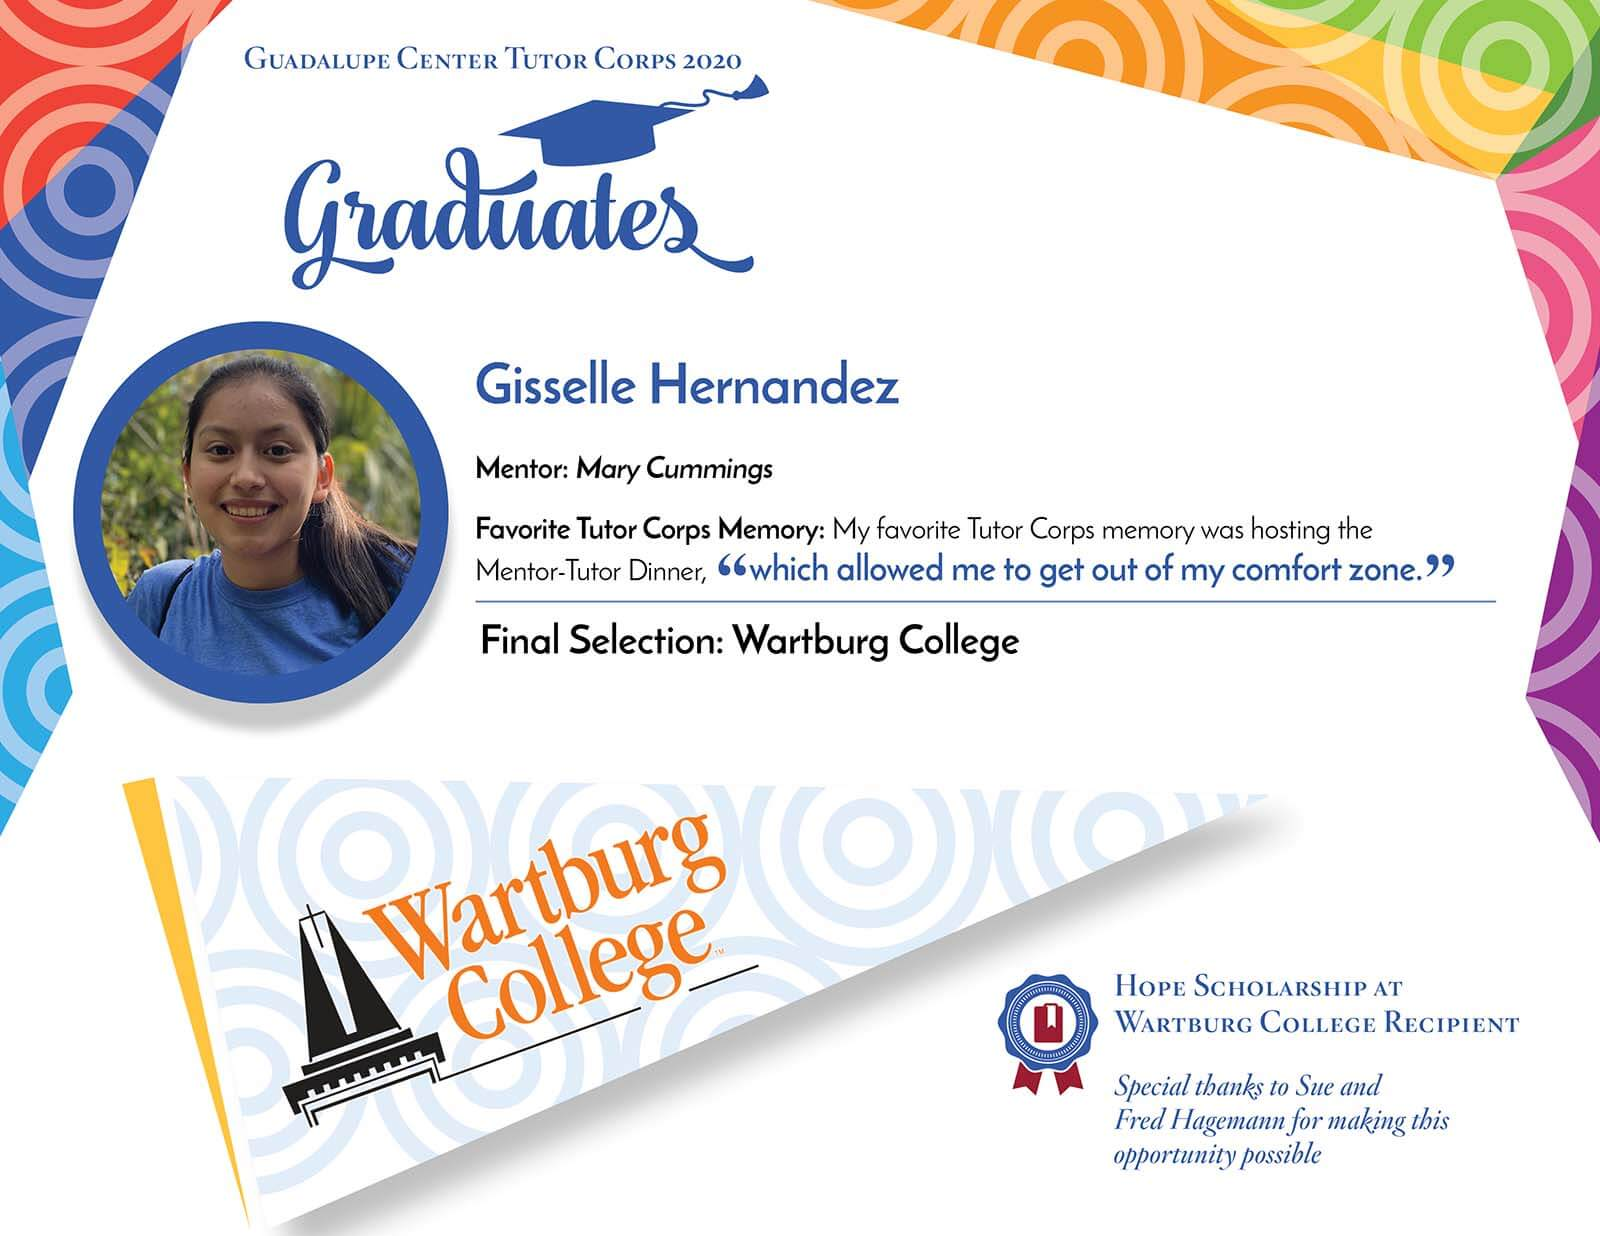 Gisselle Hernandez Guadalupe Center Tutors Corps Graduate